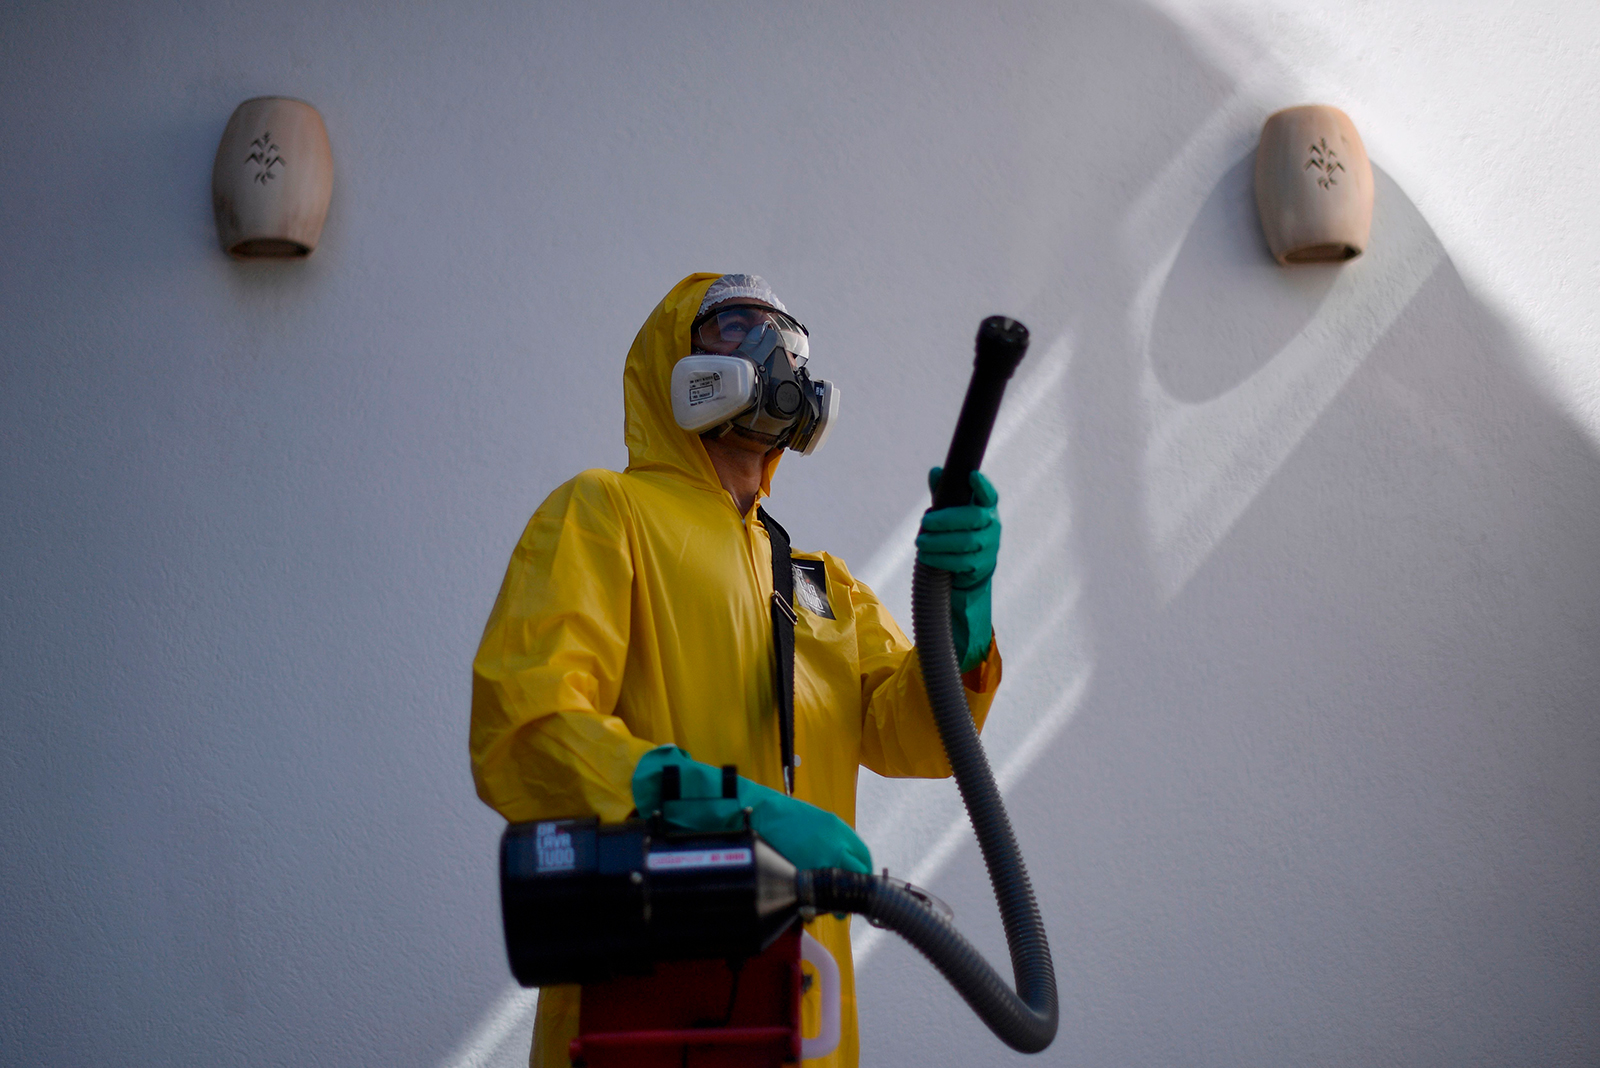 An employee of a private company sanitizes against the spread of Covid-19 at a house in Belo Horizonte, Brazil, on June 26.